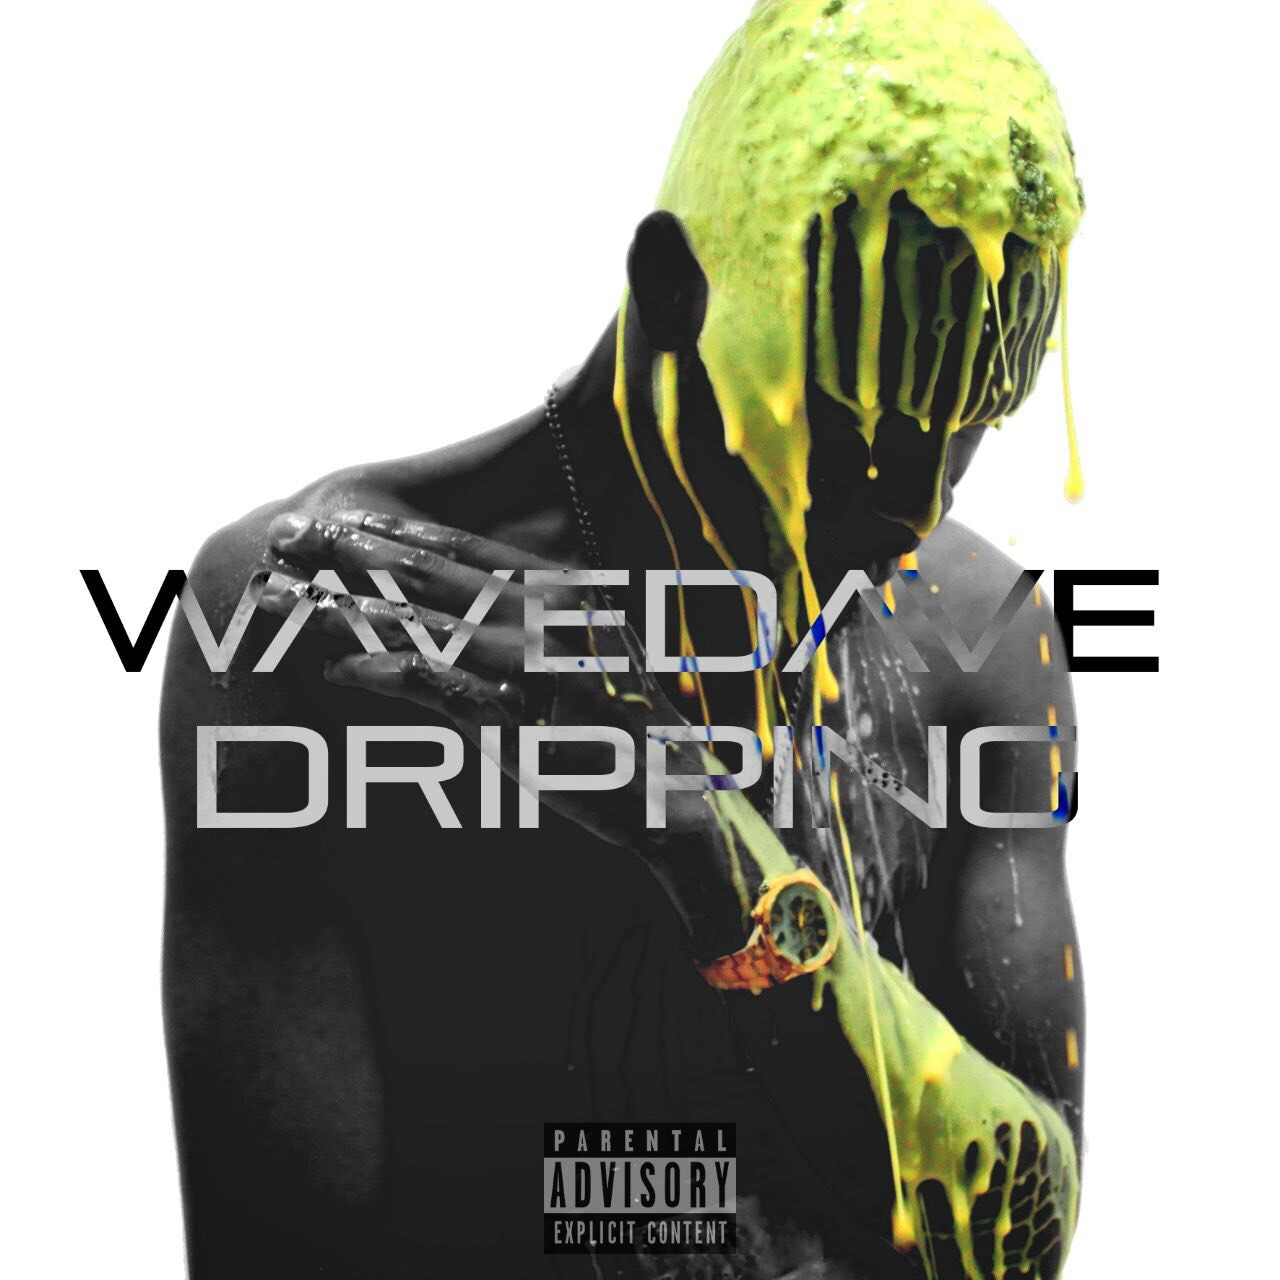 Listen to WaveDave's 'Dripping' Debut Single wave